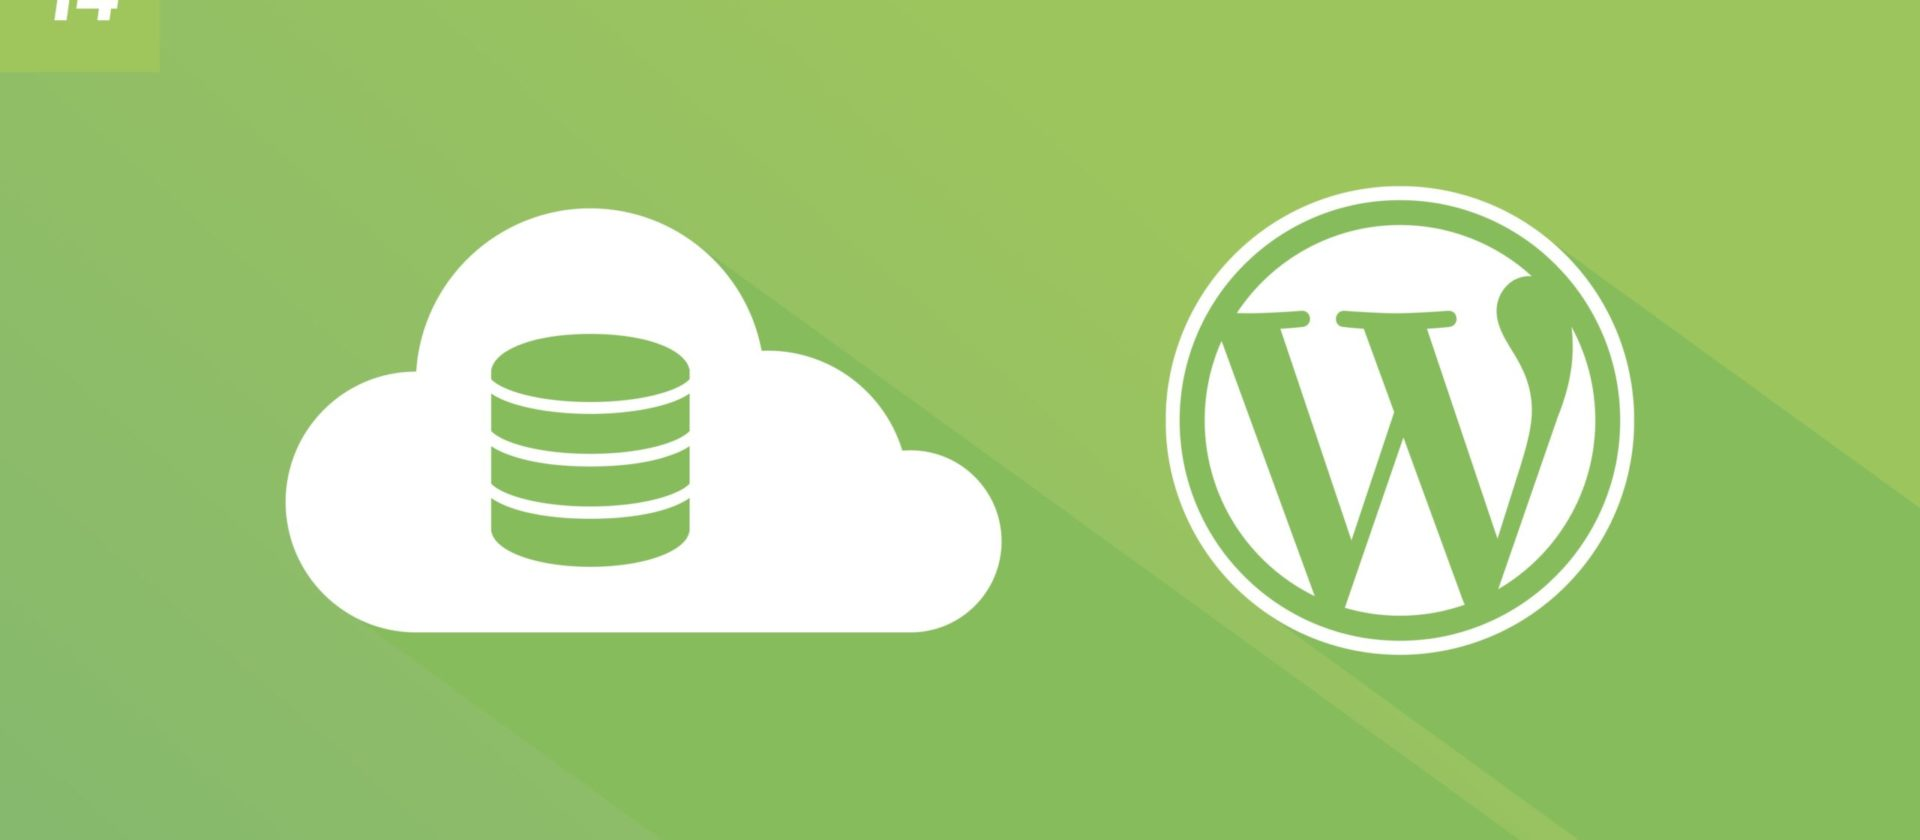 Cloud-Speicher in WordPress Projekte integrieren